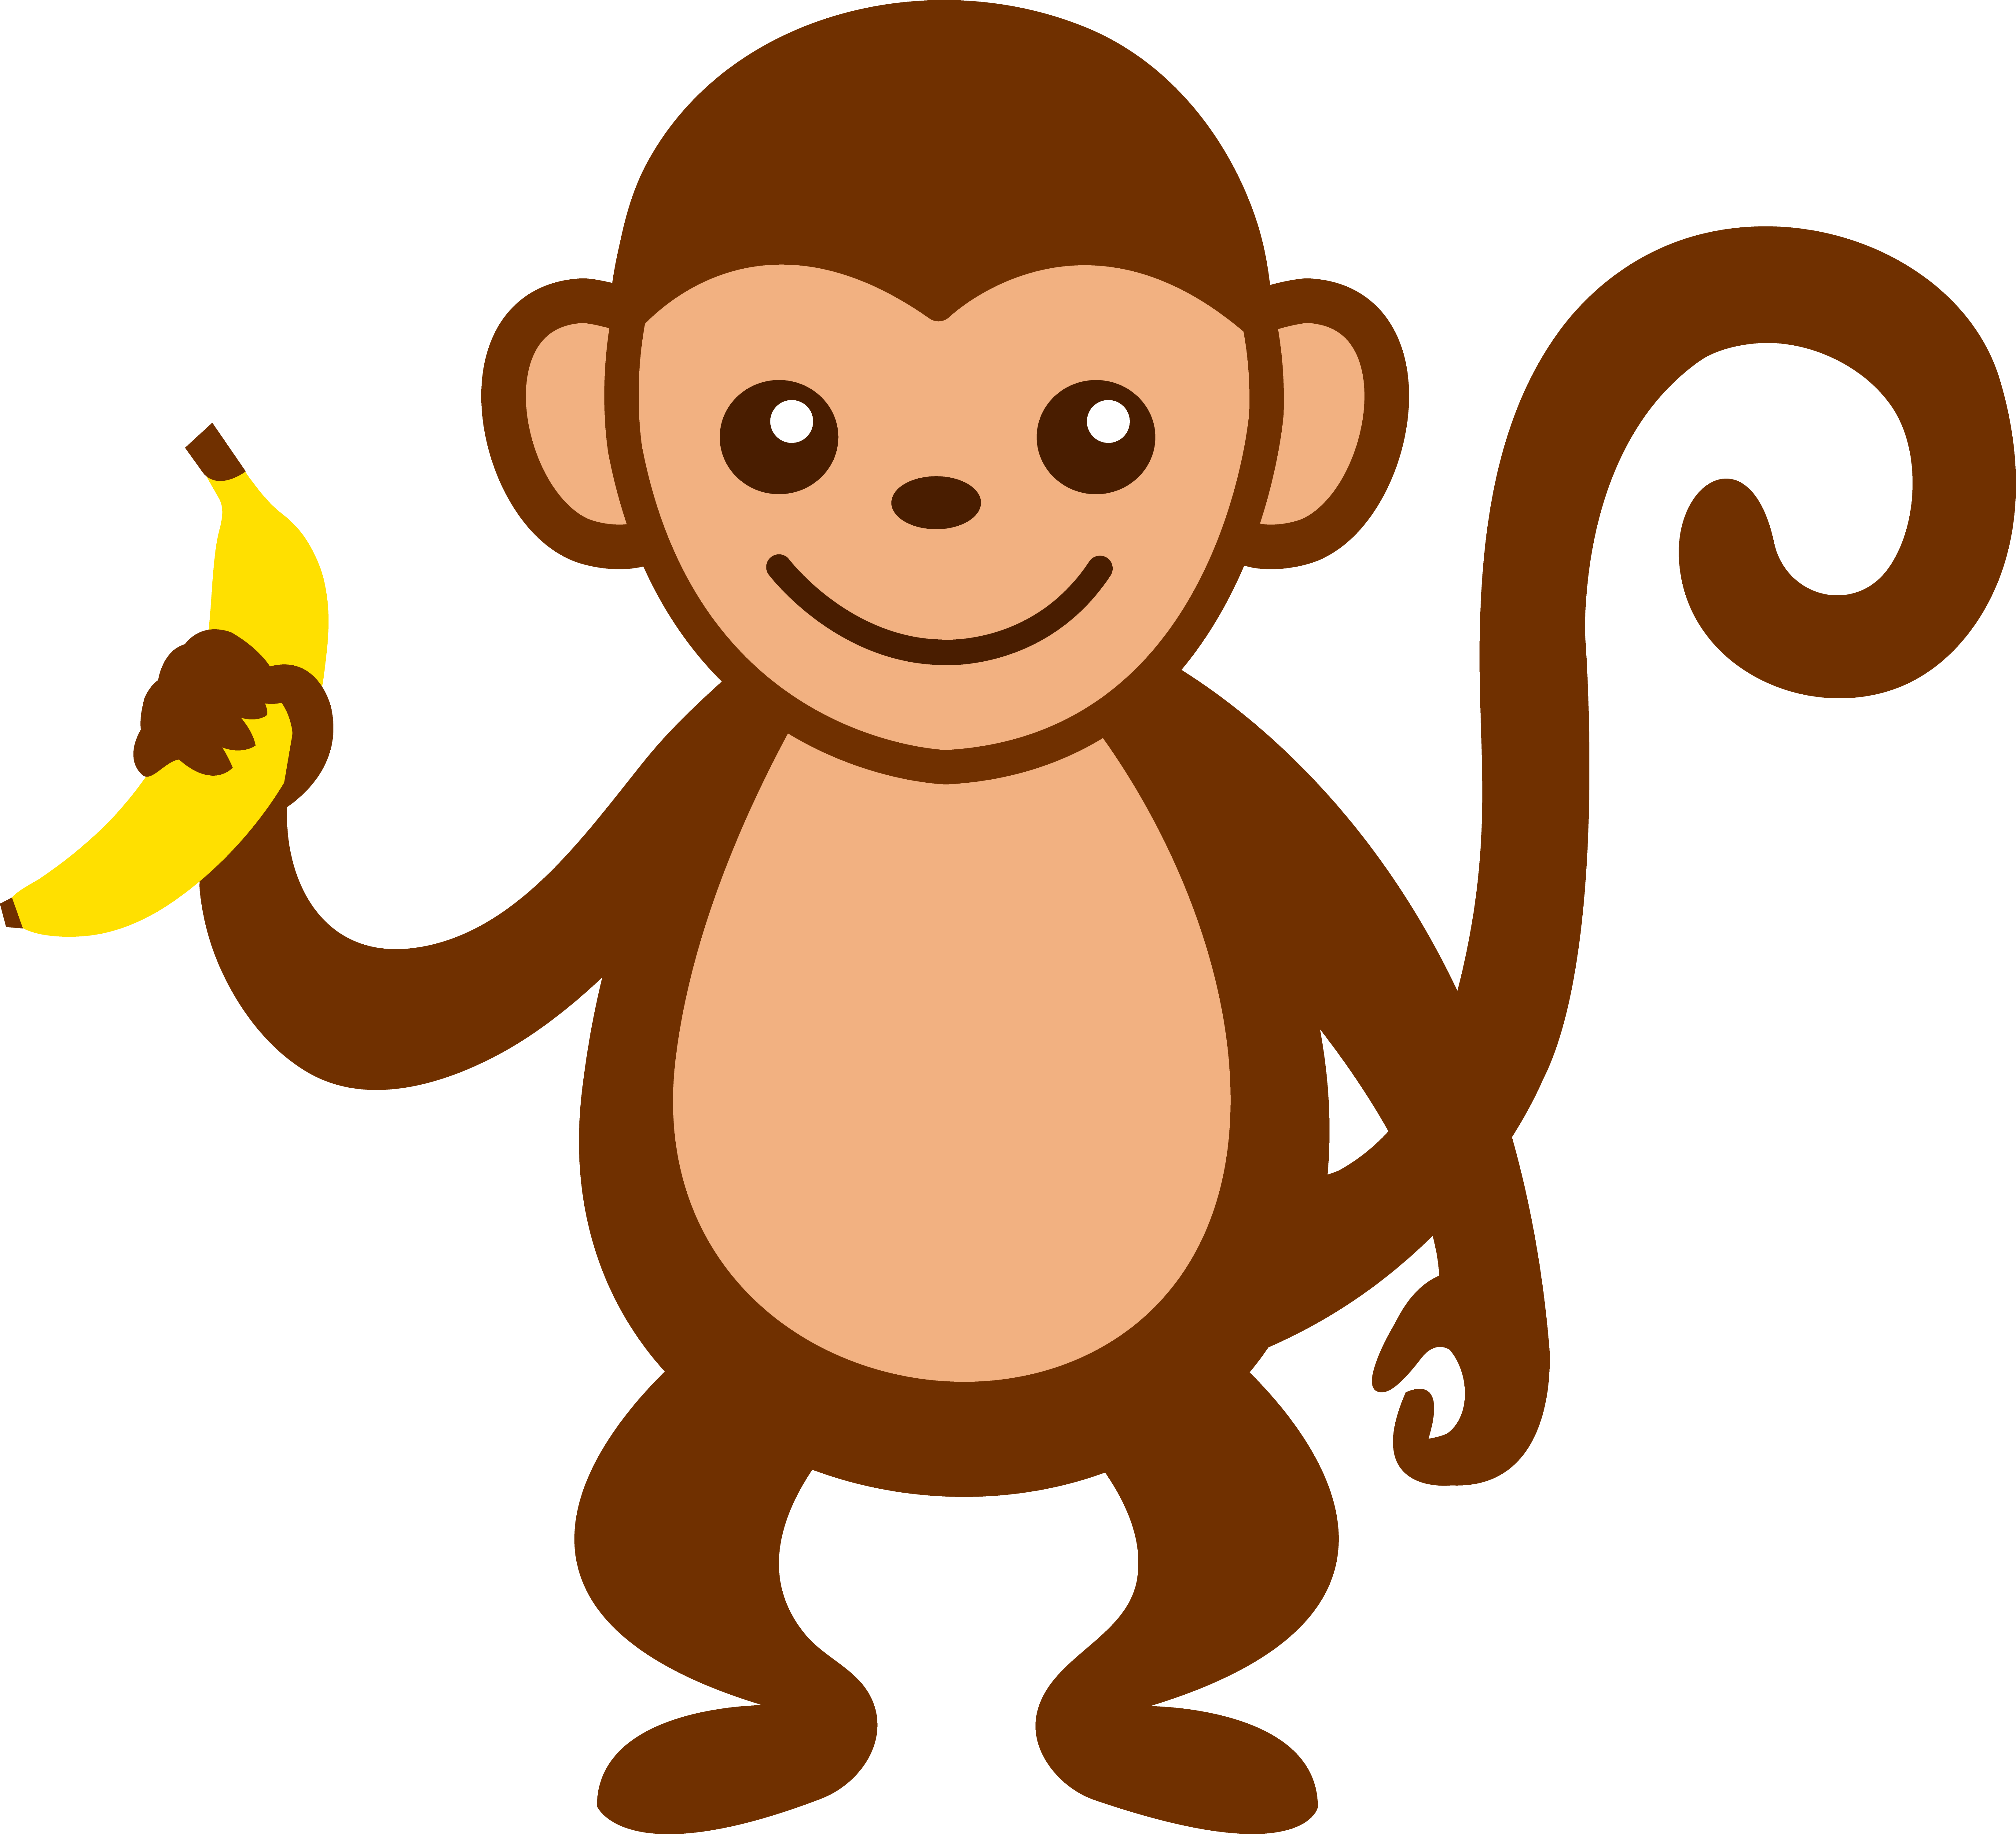 Free Cute Monkey Clipart, Download Free Clip Art, Free Clip.